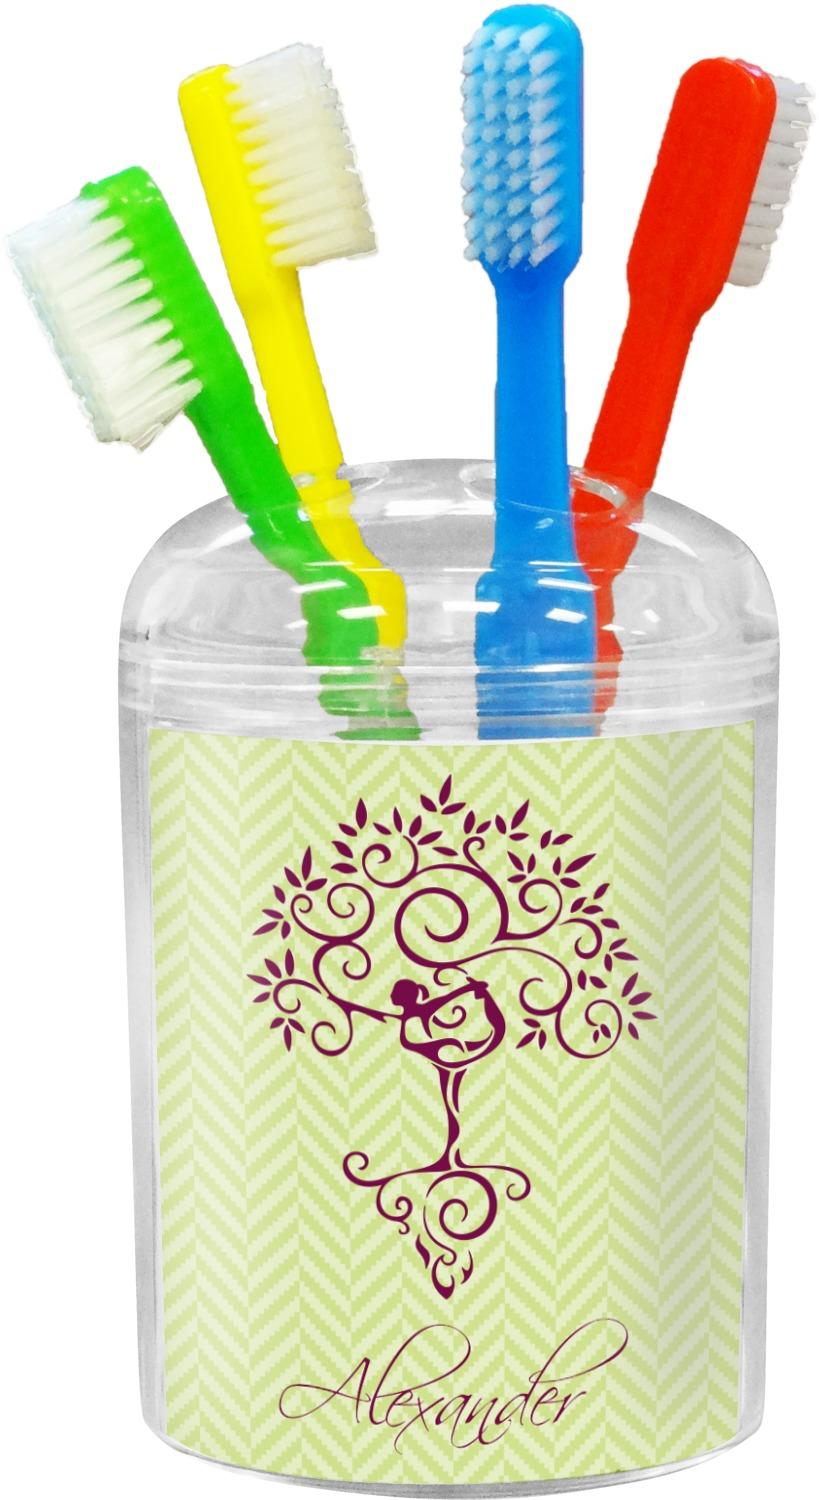 Yoga tree toothbrush holder personalized youcustomizeit for Bathroom decor hashtags